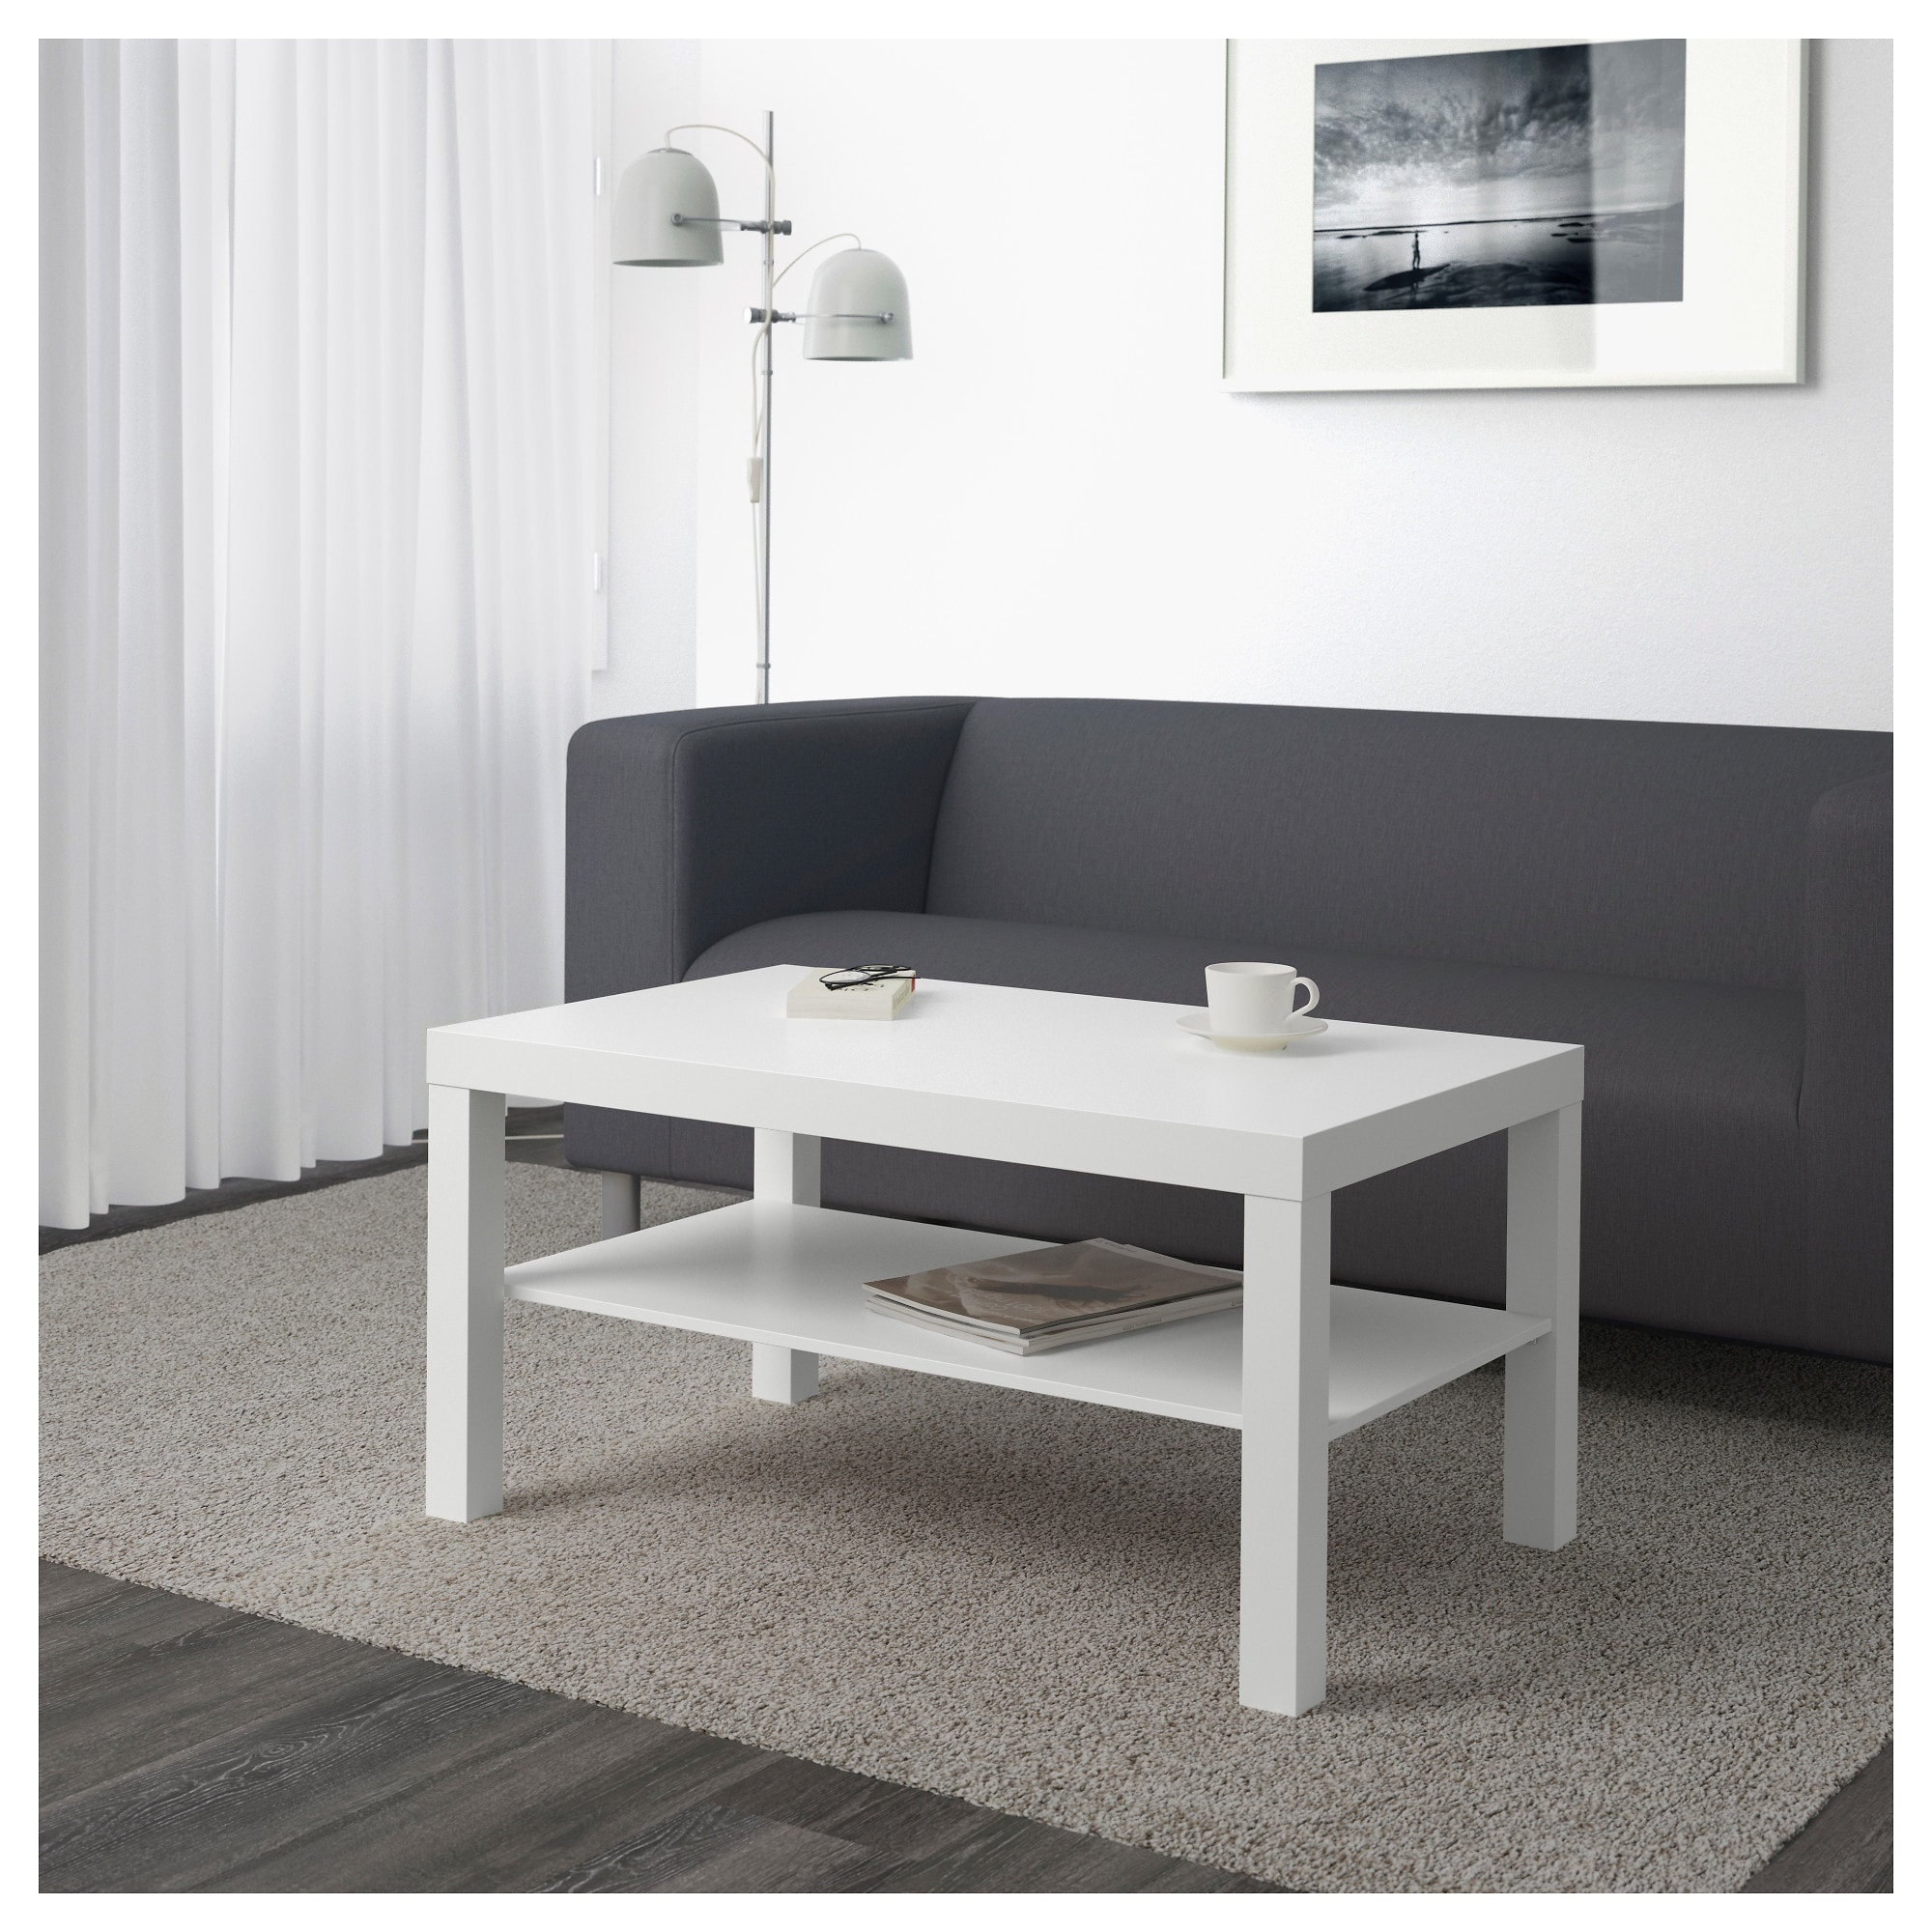 Best ideas about Lack Coffee Table . Save or Pin LACK Coffee table White 90 x 55 cm IKEA Now.